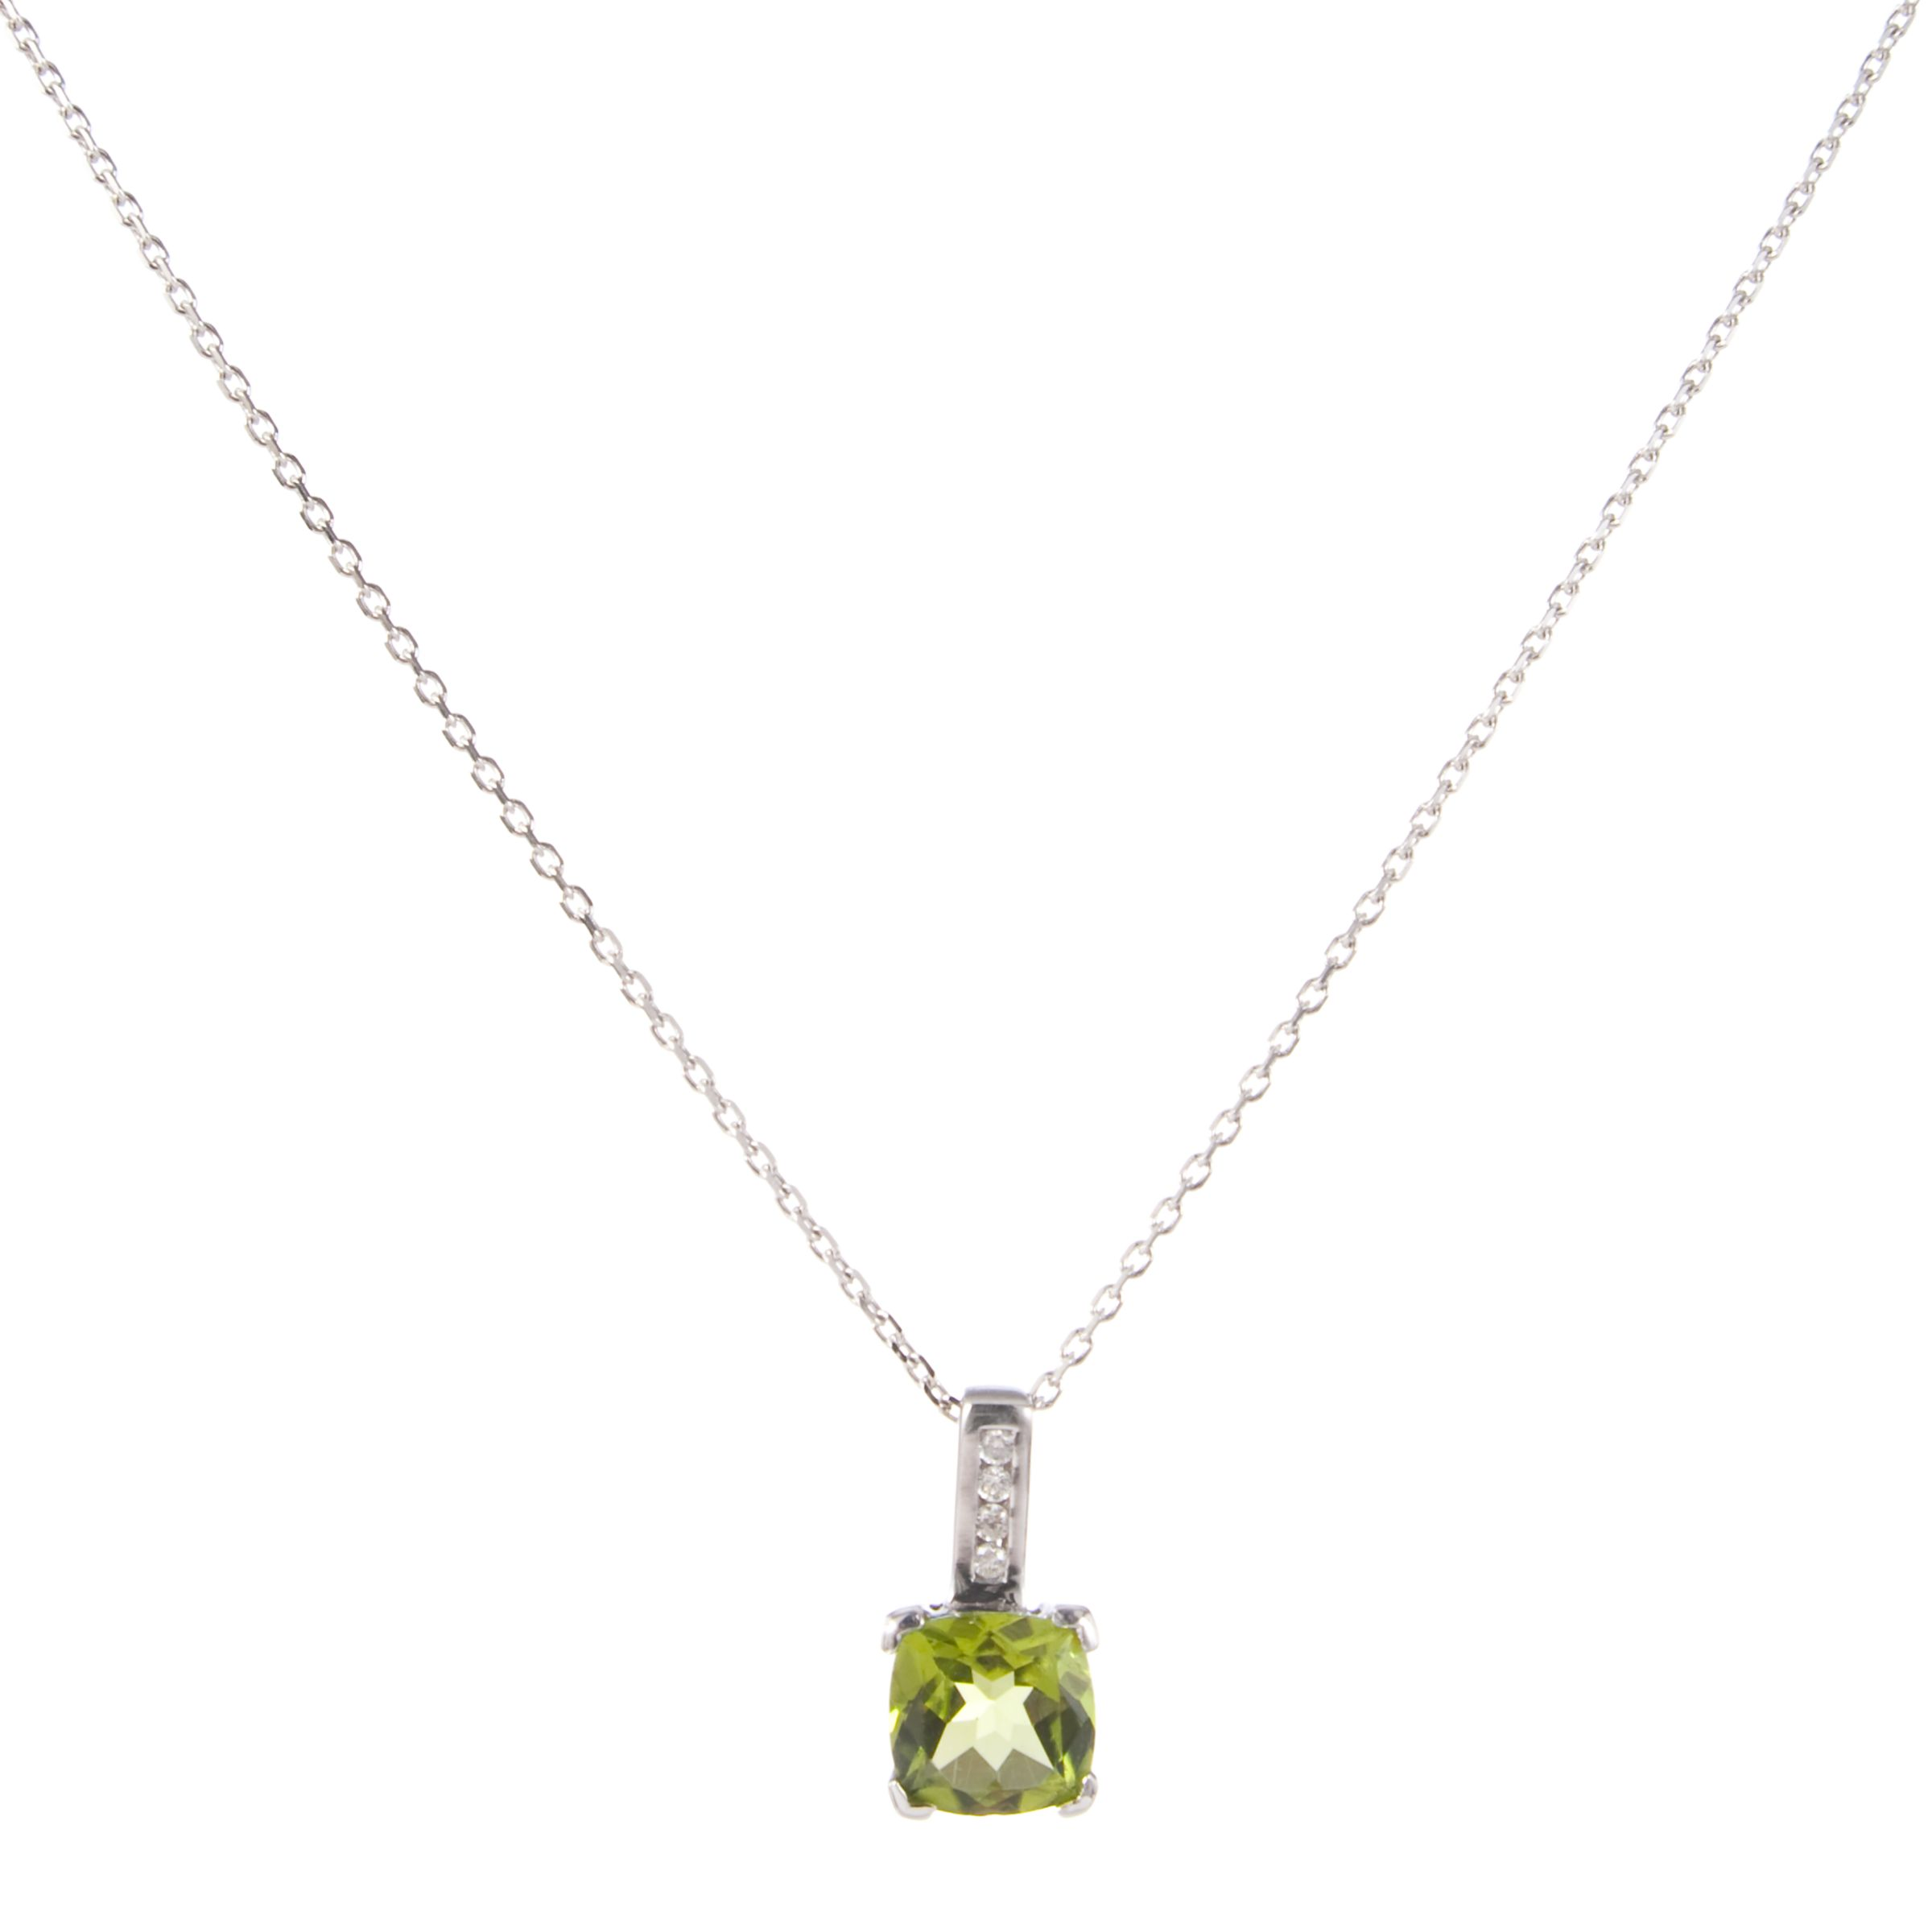 White Gold Cushion Cut Peridot Pendant with Diamond Bar Necklace